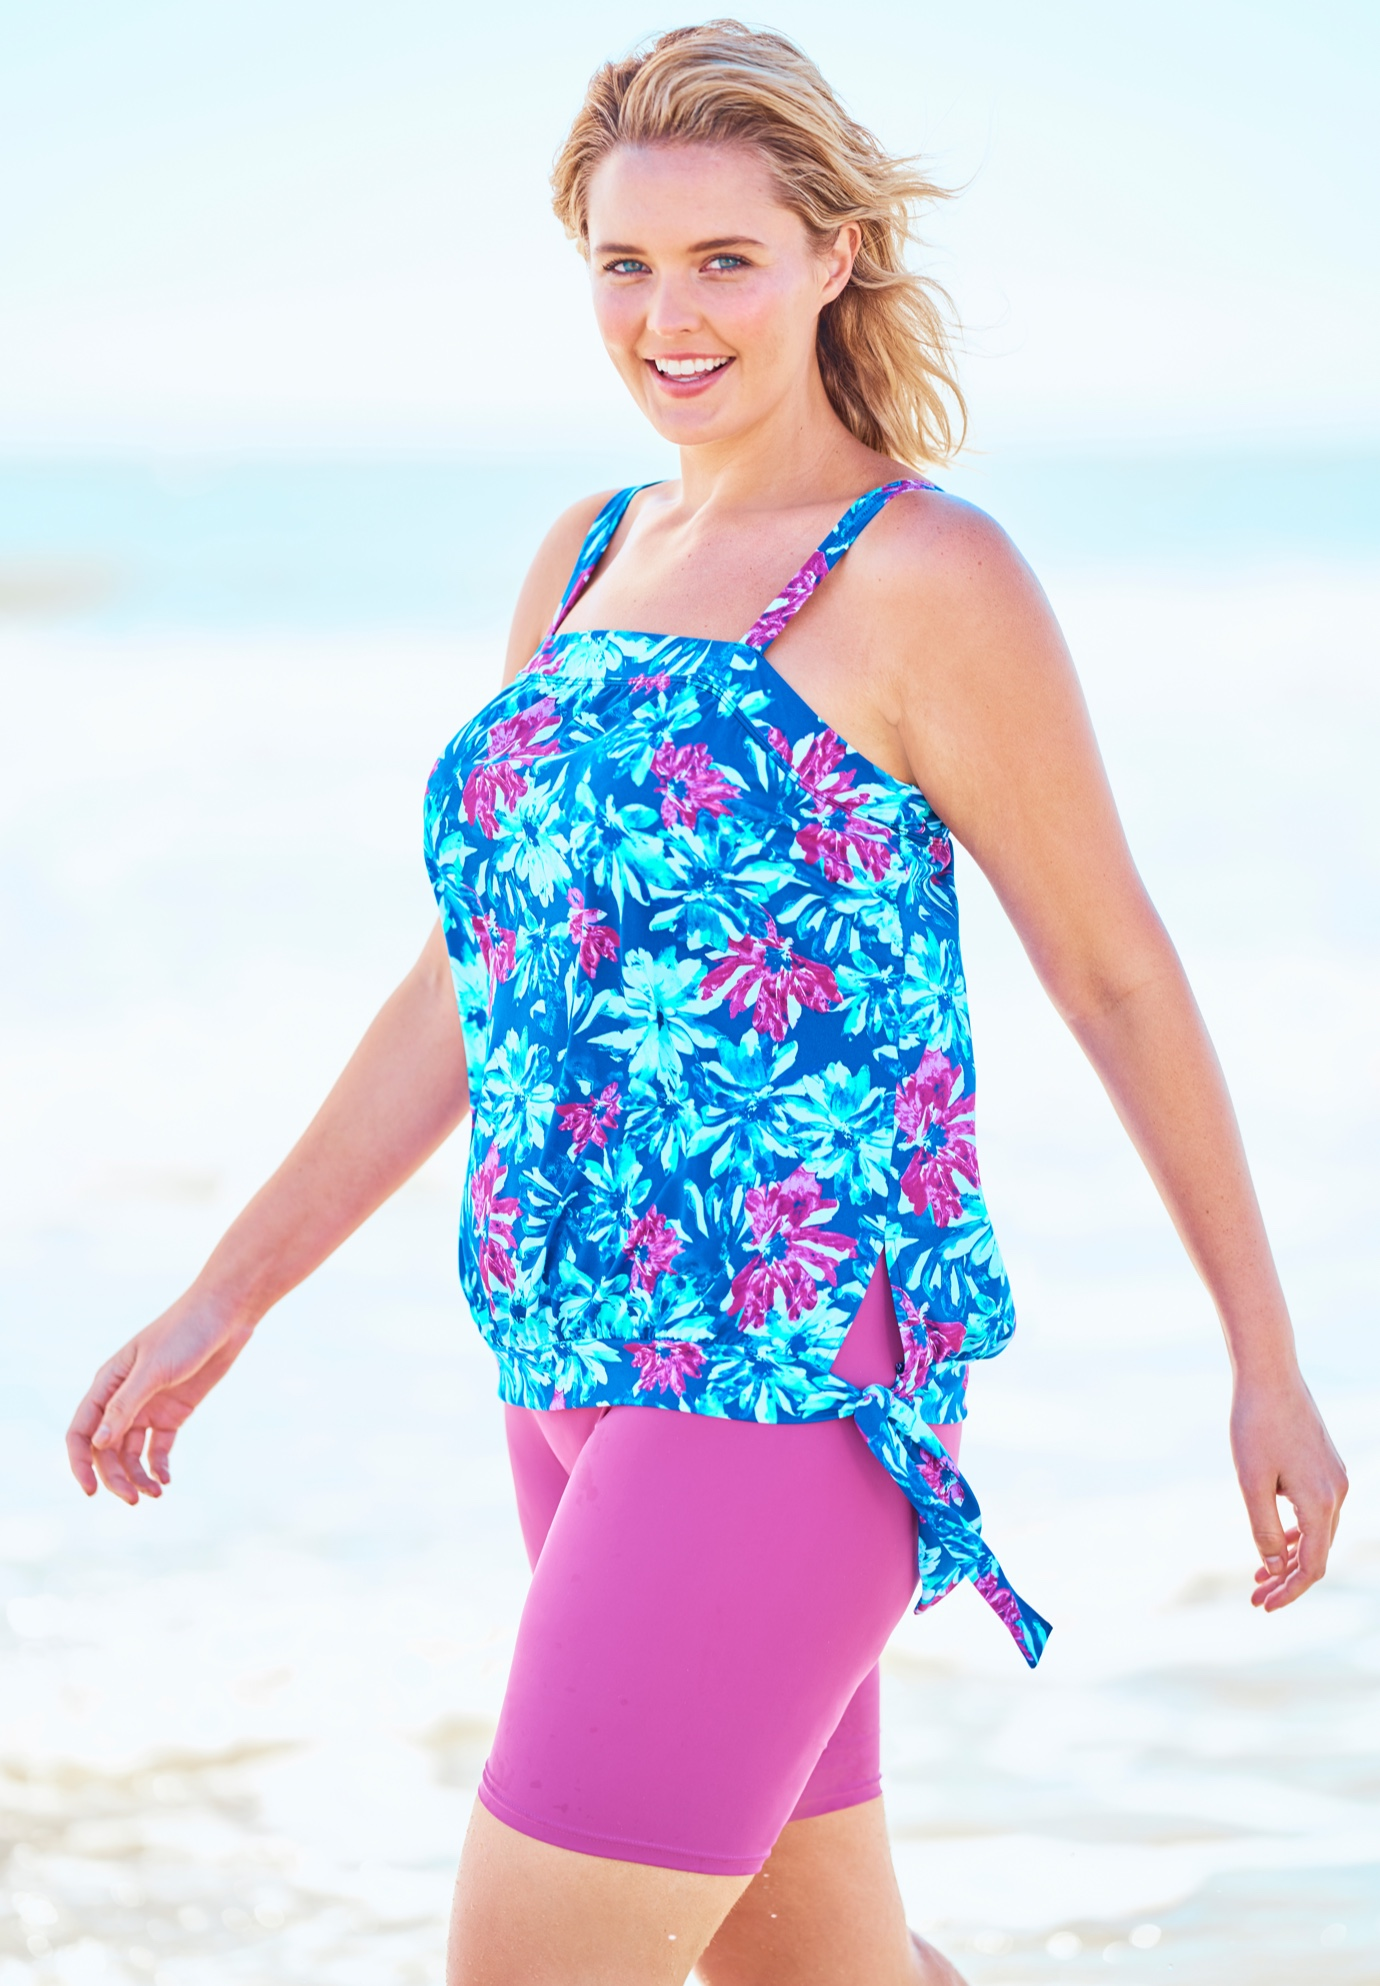 Blouson Tankini Top with Adjustable Straps by Swim 365,